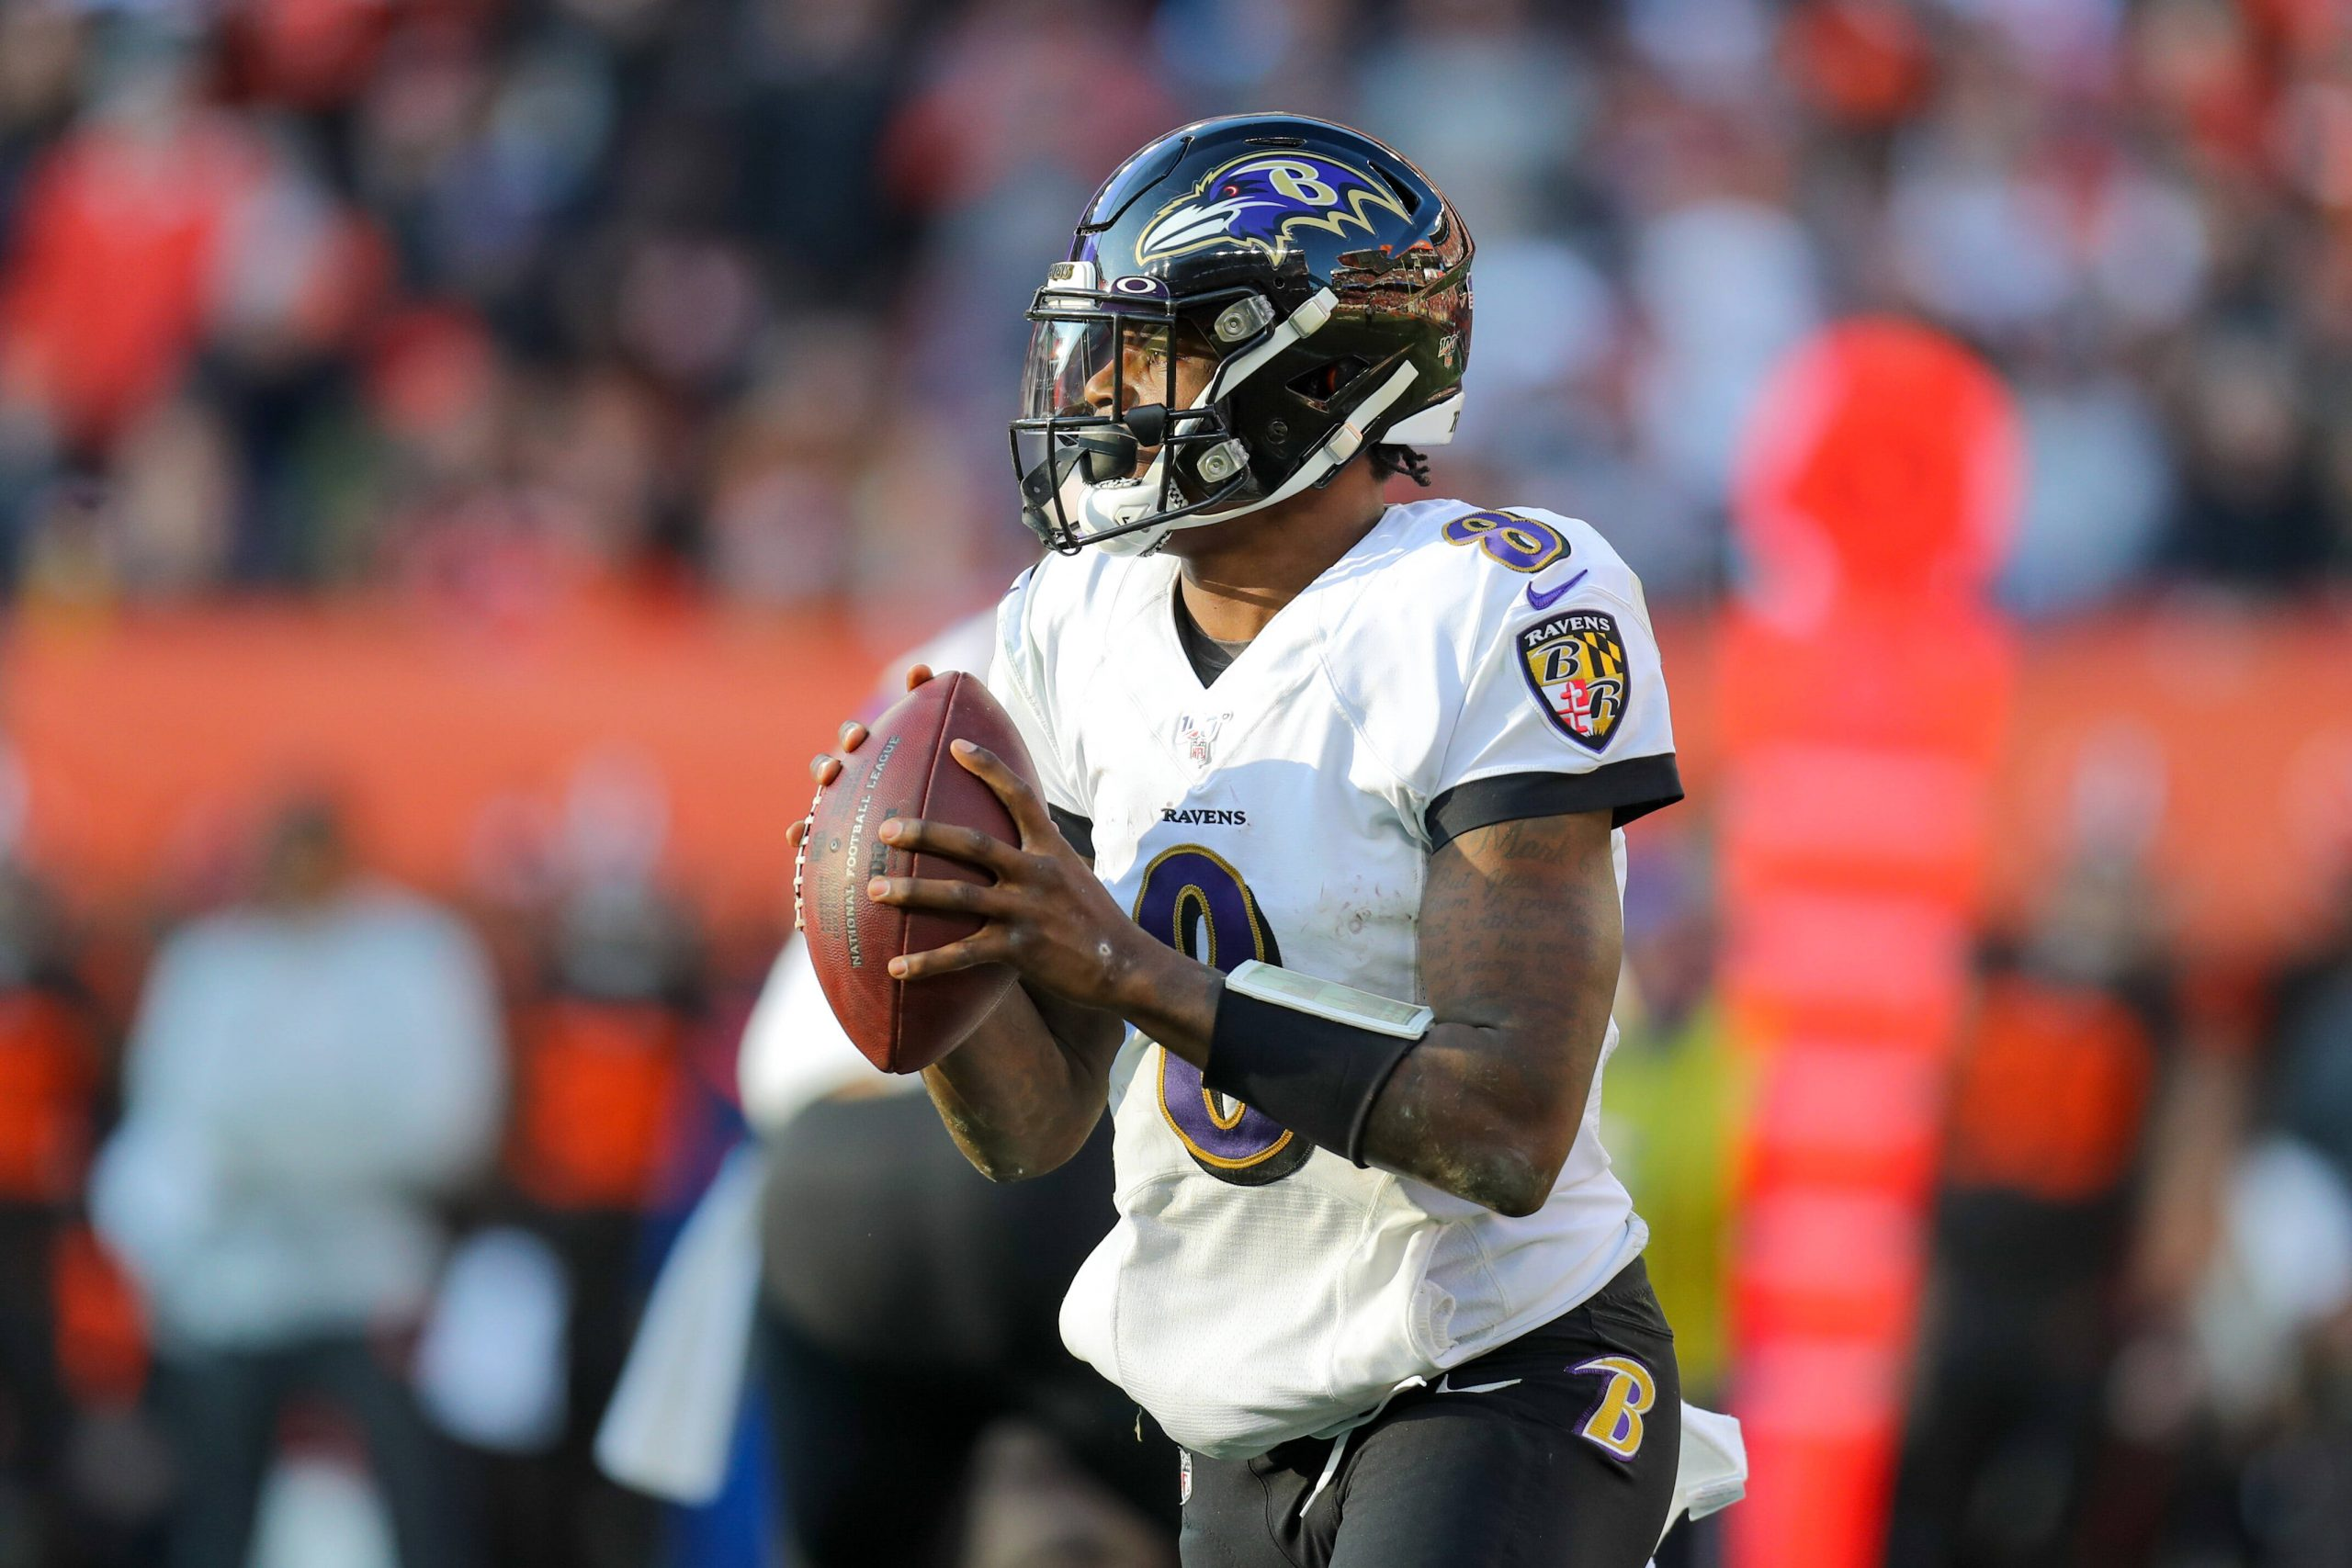 CLEVELAND, OH - DECEMBER 22: Baltimore Ravens quarterback Lamar Jackson (8) looks to pass during the third quarter of th